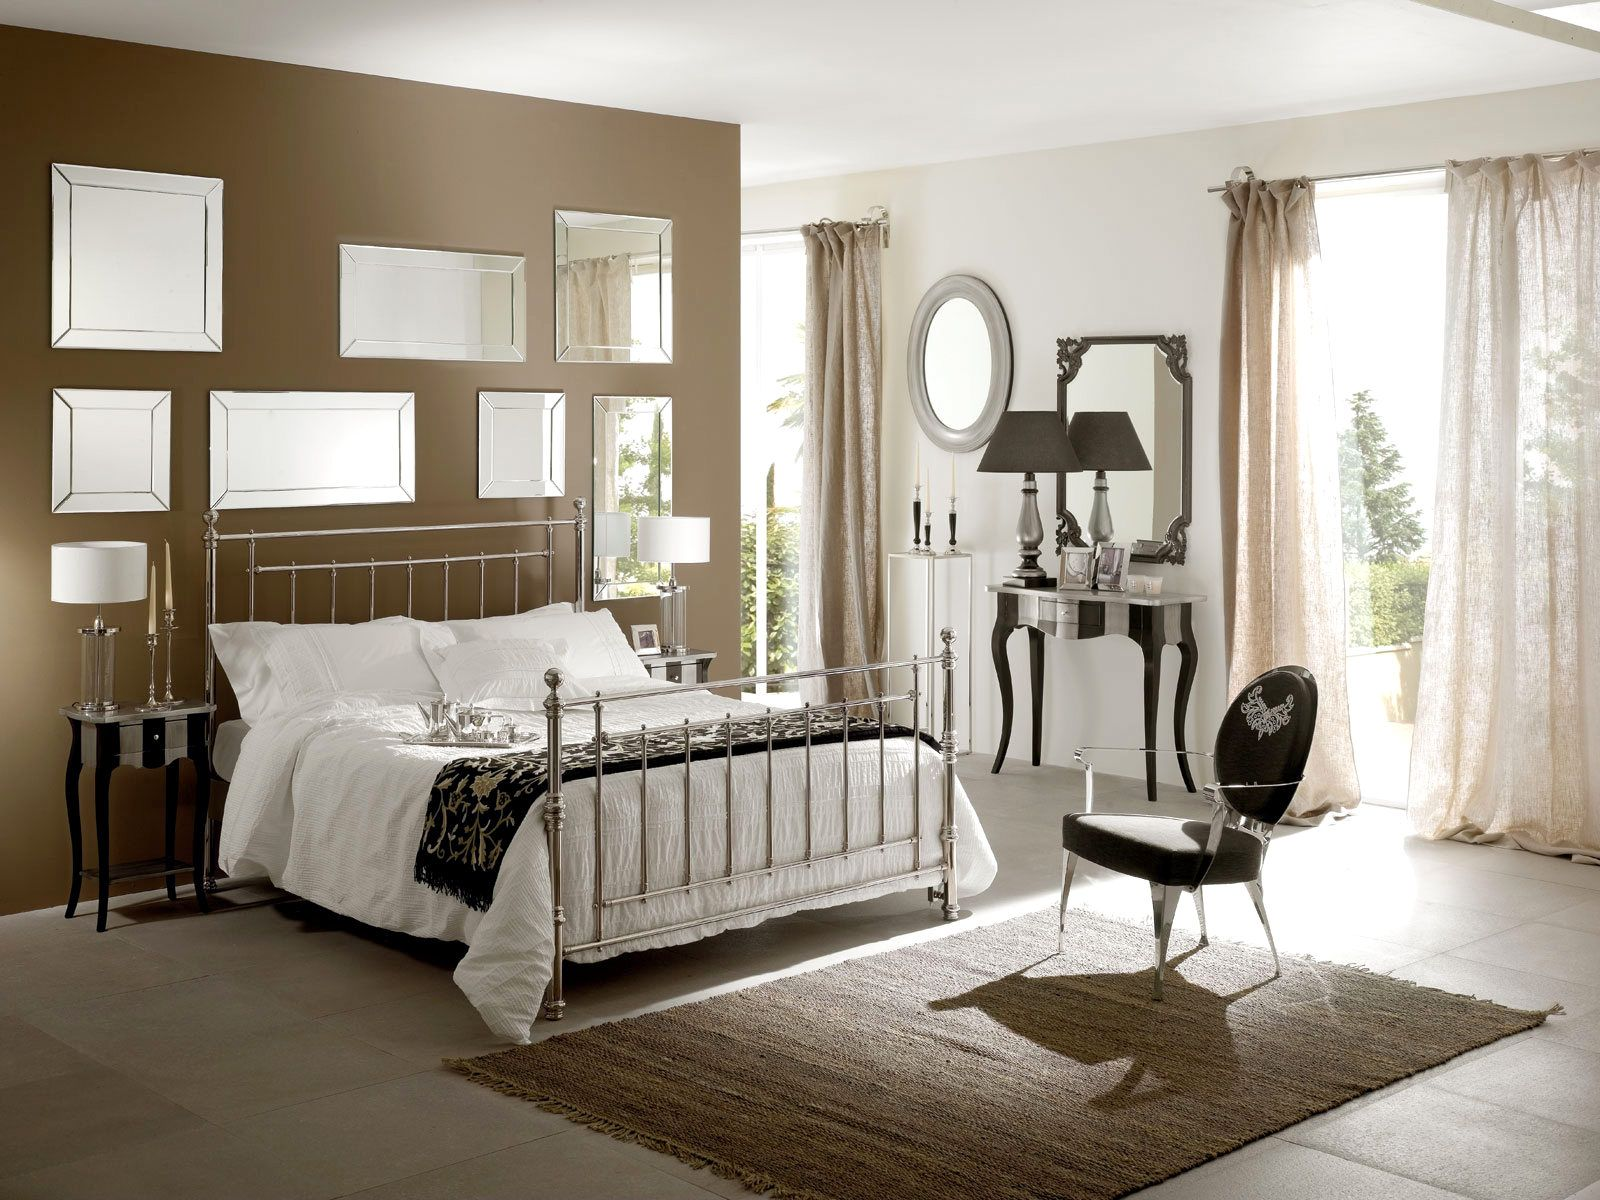 Pleasant and Beautiful Girls Bedroom Decorating Idea with Chic